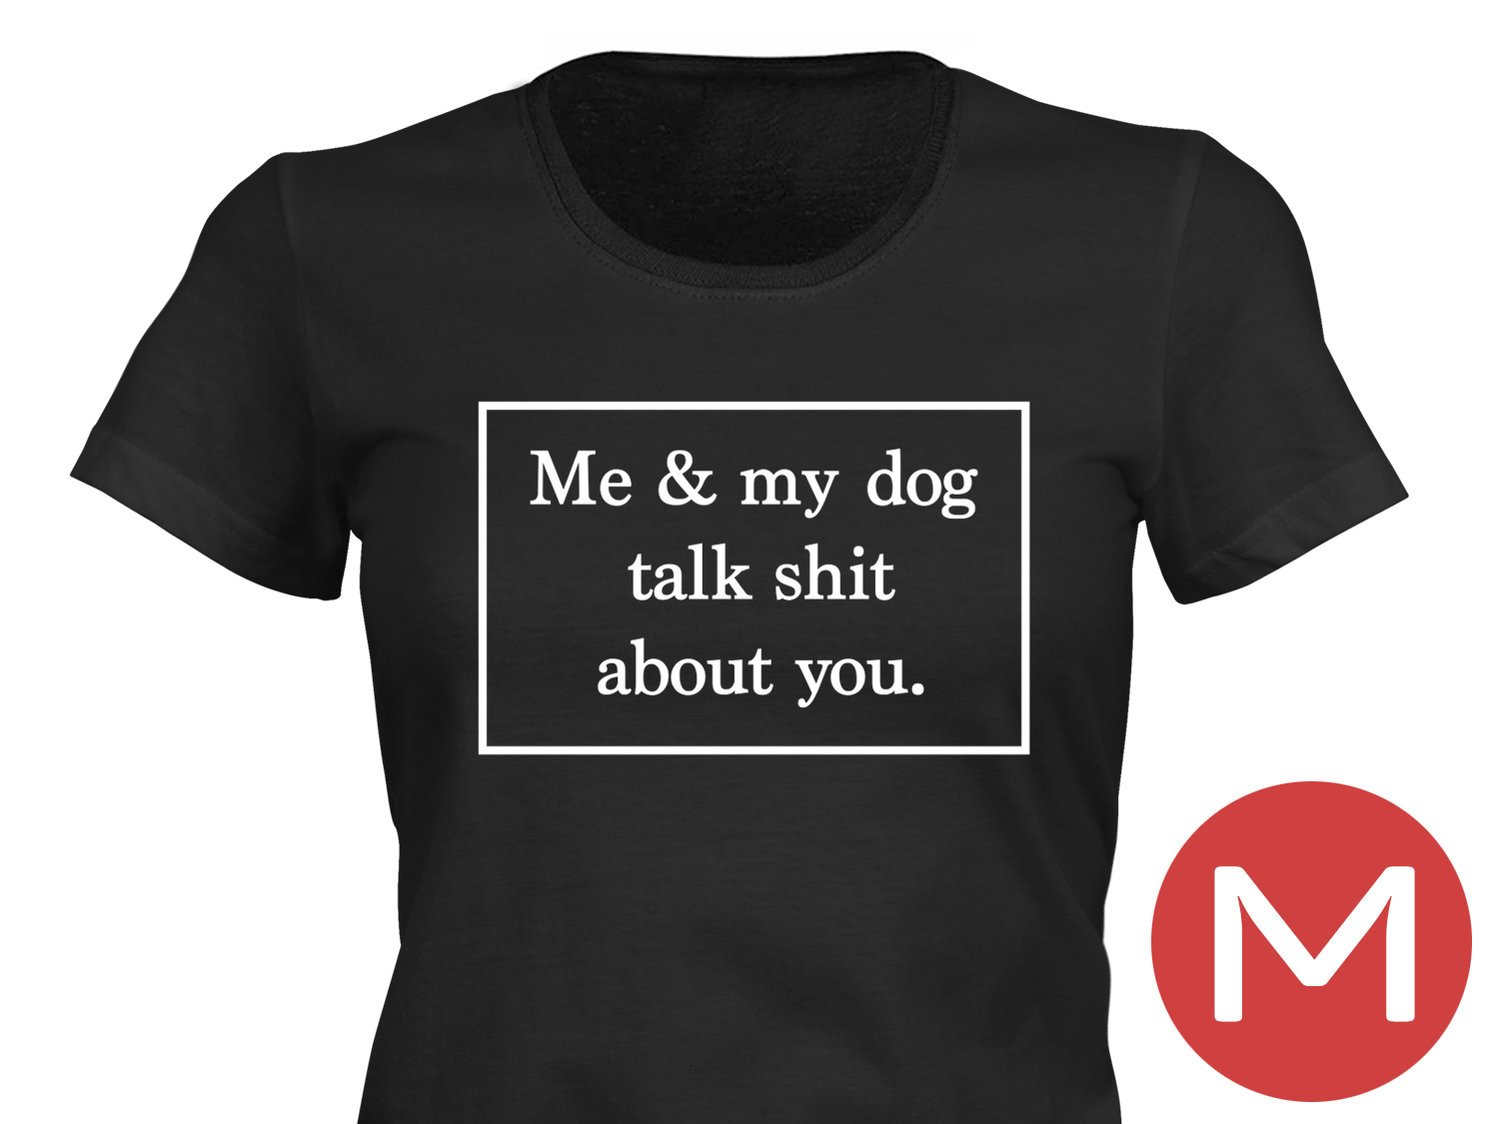 Me And My Dog Talk Shit About You T-Shirt Tröja Rolig Tshirt med tryck Svart DAM